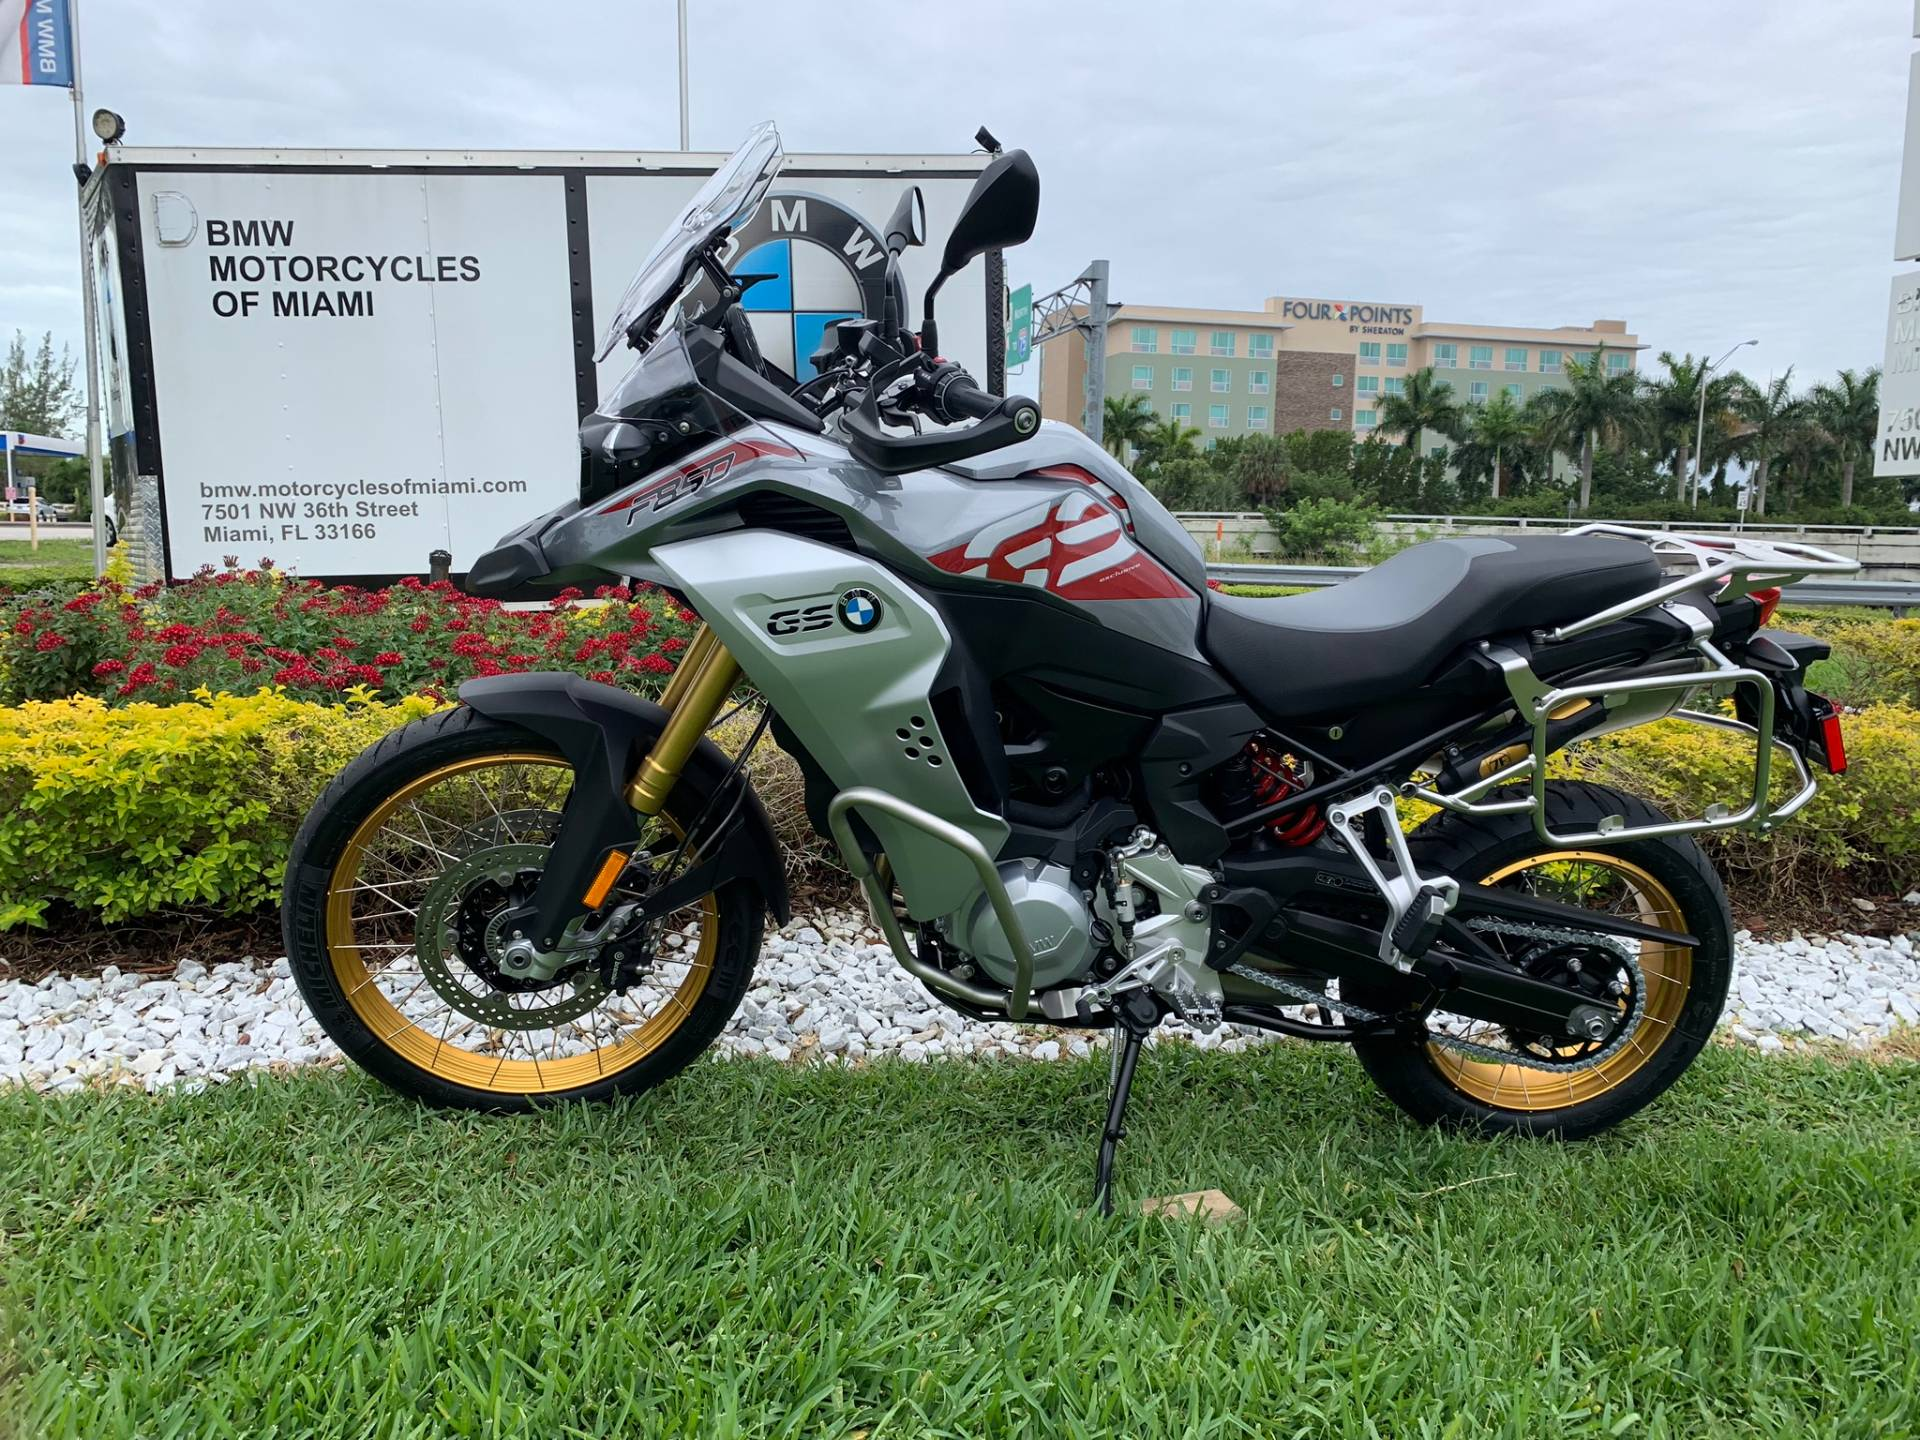 New 2019 BMW F 850 GSA for sale, BMW F 850GSA for sale, BMW Motorcycle F850GSA, new BMW 850 Adventure, Adventure. BMW Motorcycles of Miami, Motorcycles of Miami, Motorcycles Miami, New Motorcycles, Used Motorcycles, pre-owned. #BMWMotorcyclesOfMiami #MotorcyclesOfMiami #MotorcyclesMiami - Photo 9